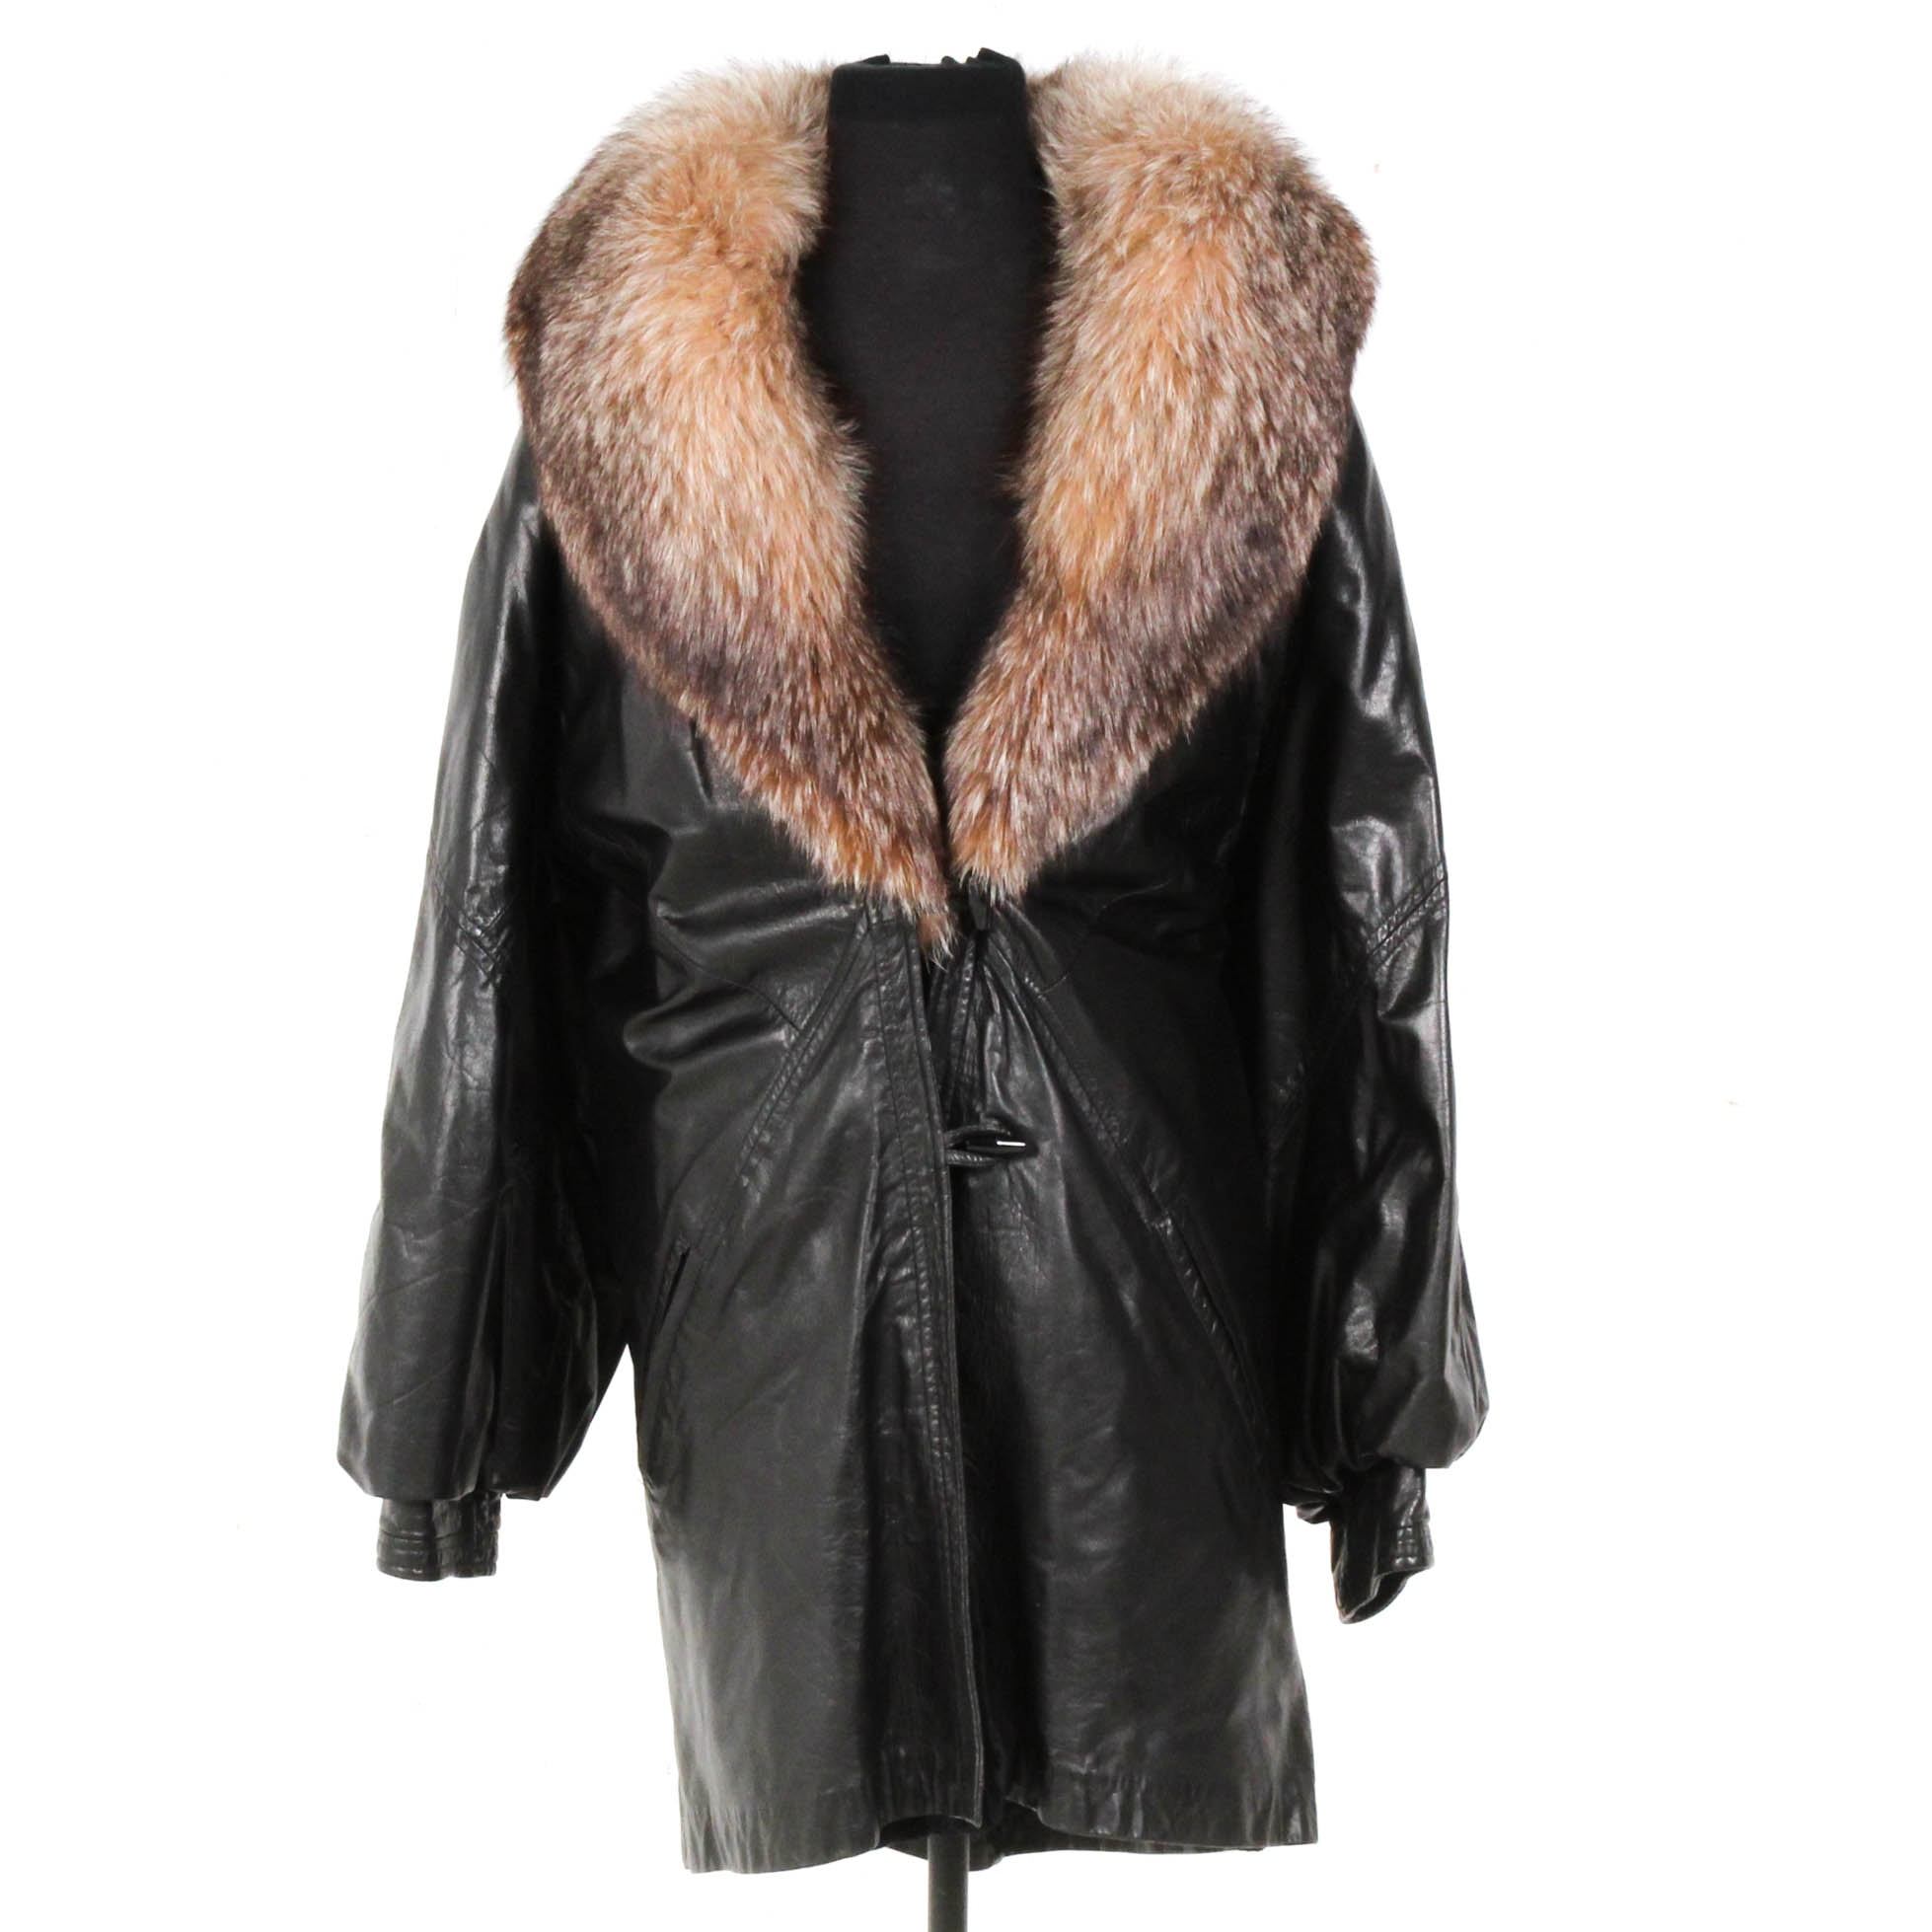 Black Leather Jacket with Fox Fur Collar and Sheared Rabbit Lining